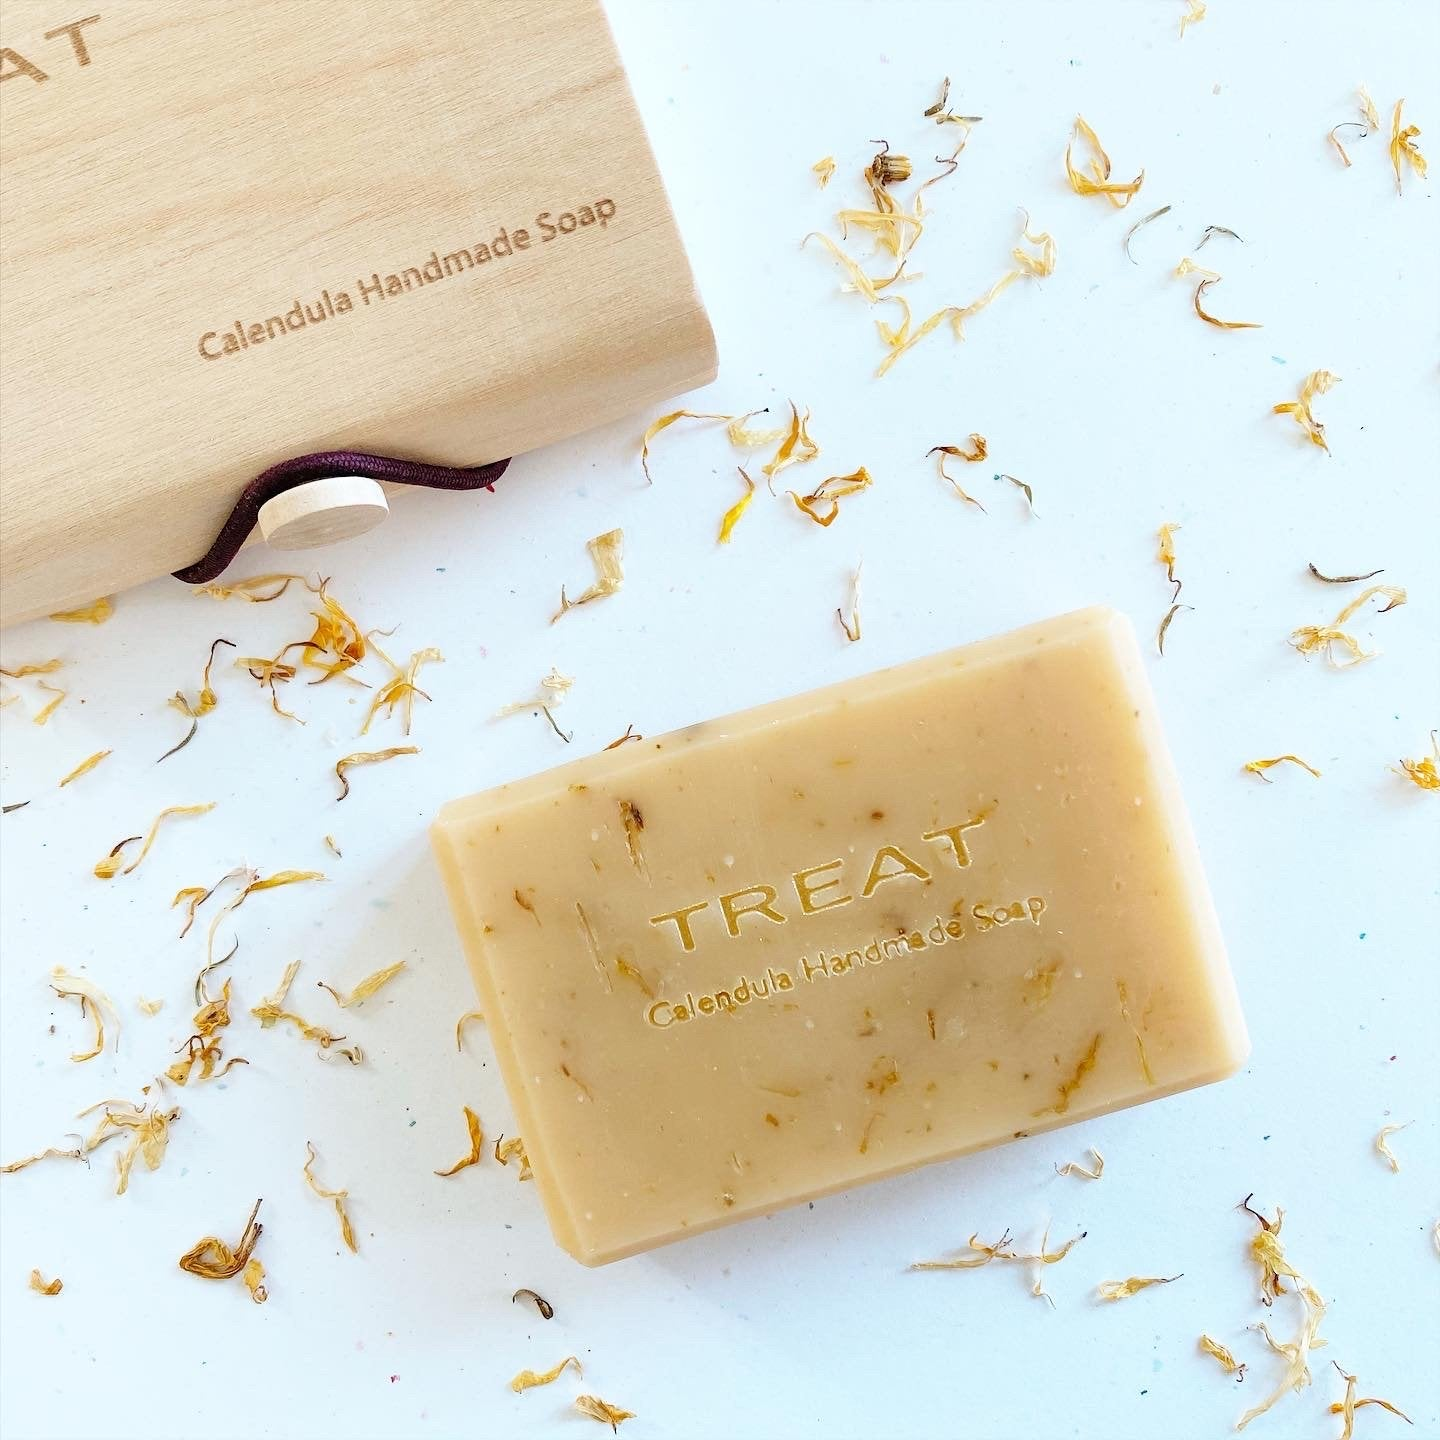 TREAT for body - Calendula Handmade Soap